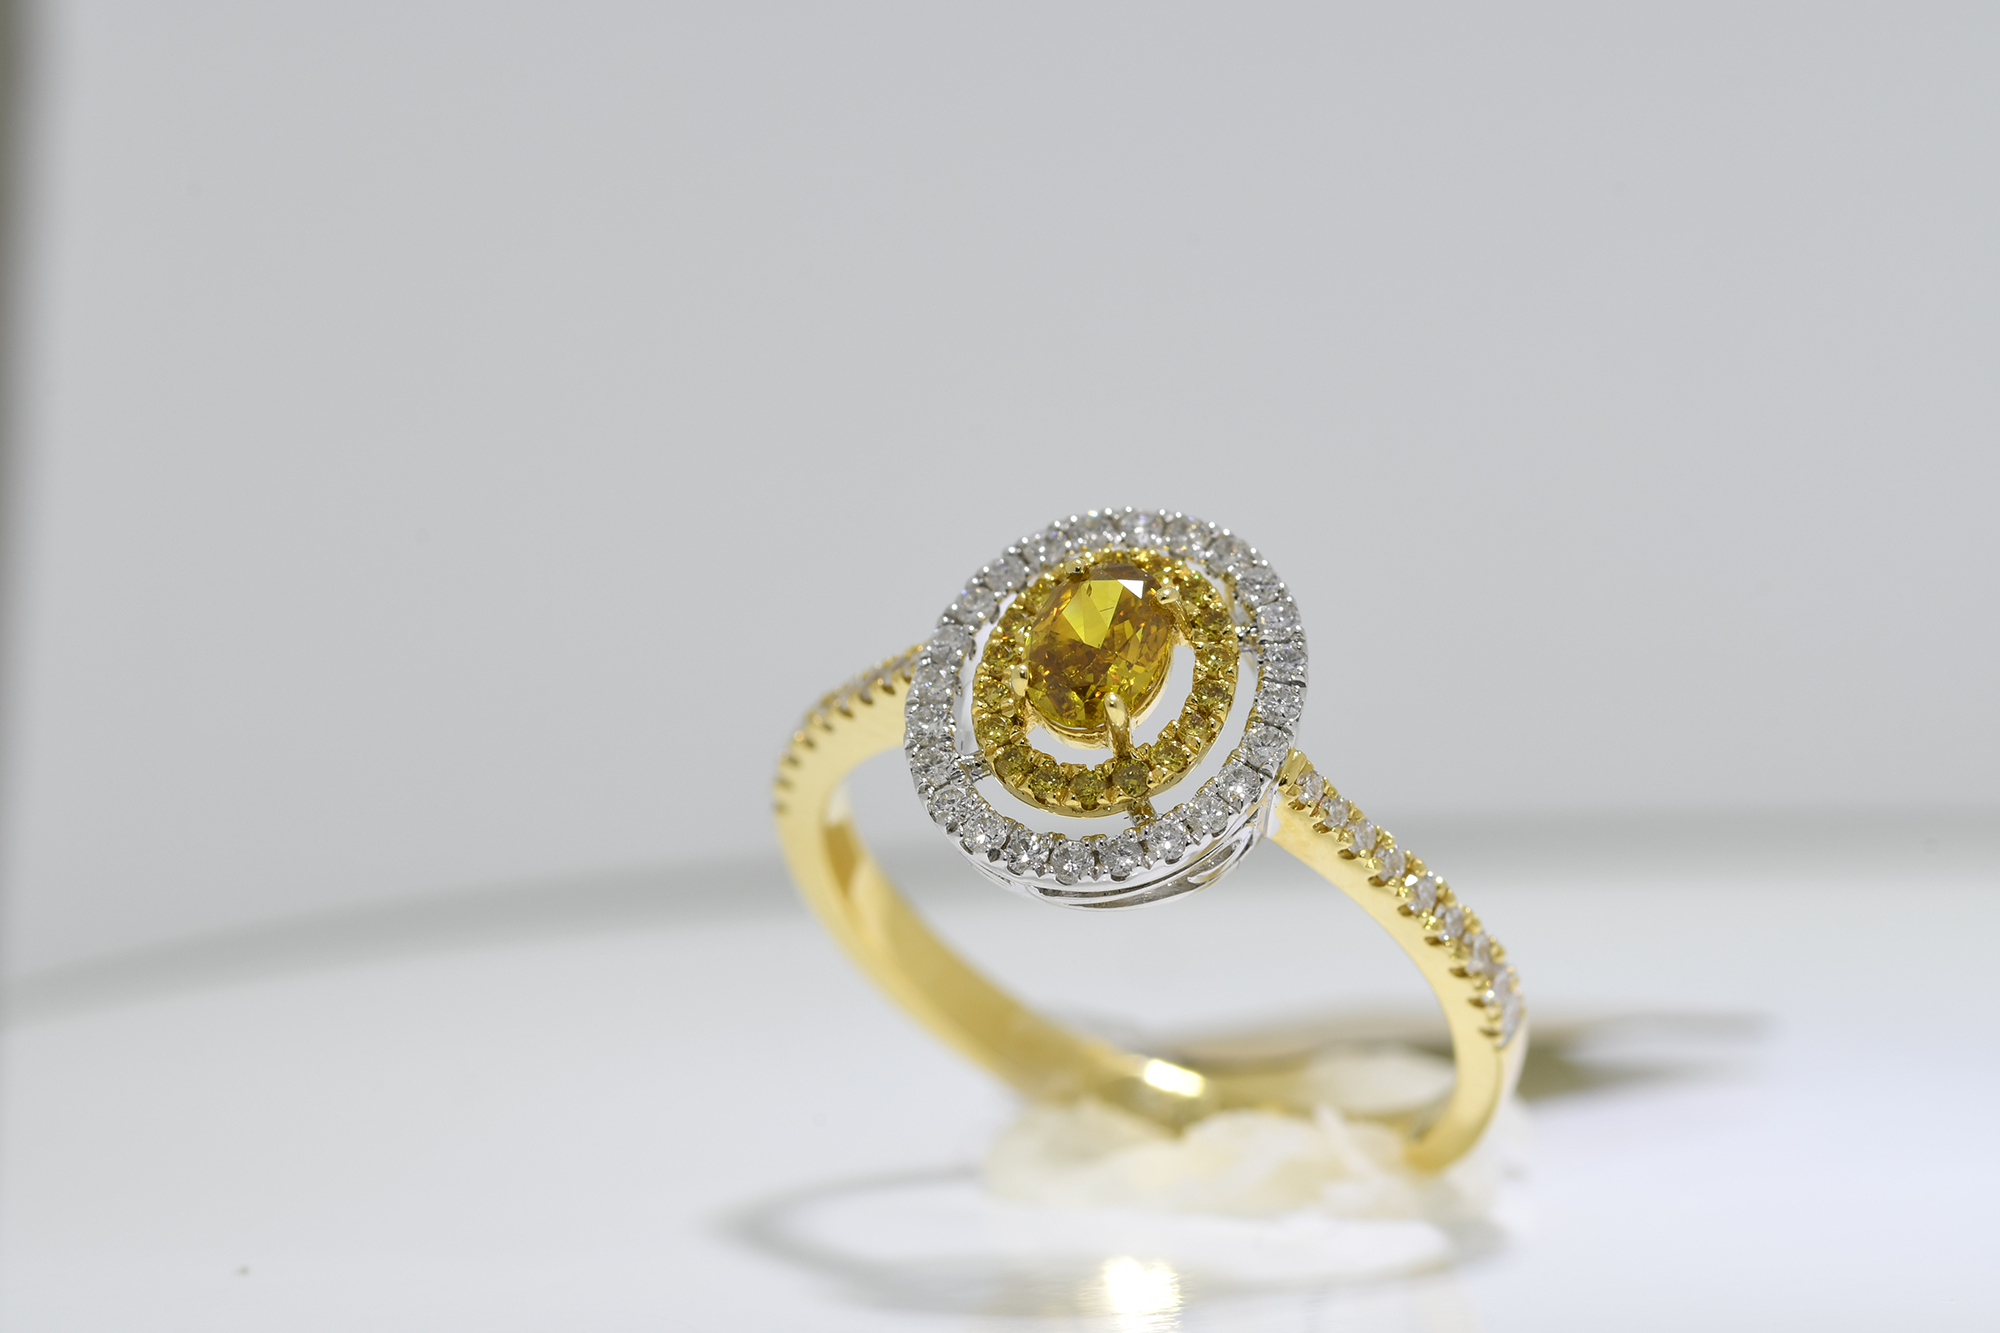 Oval Cognac Diamond Ring - Image 3 of 3